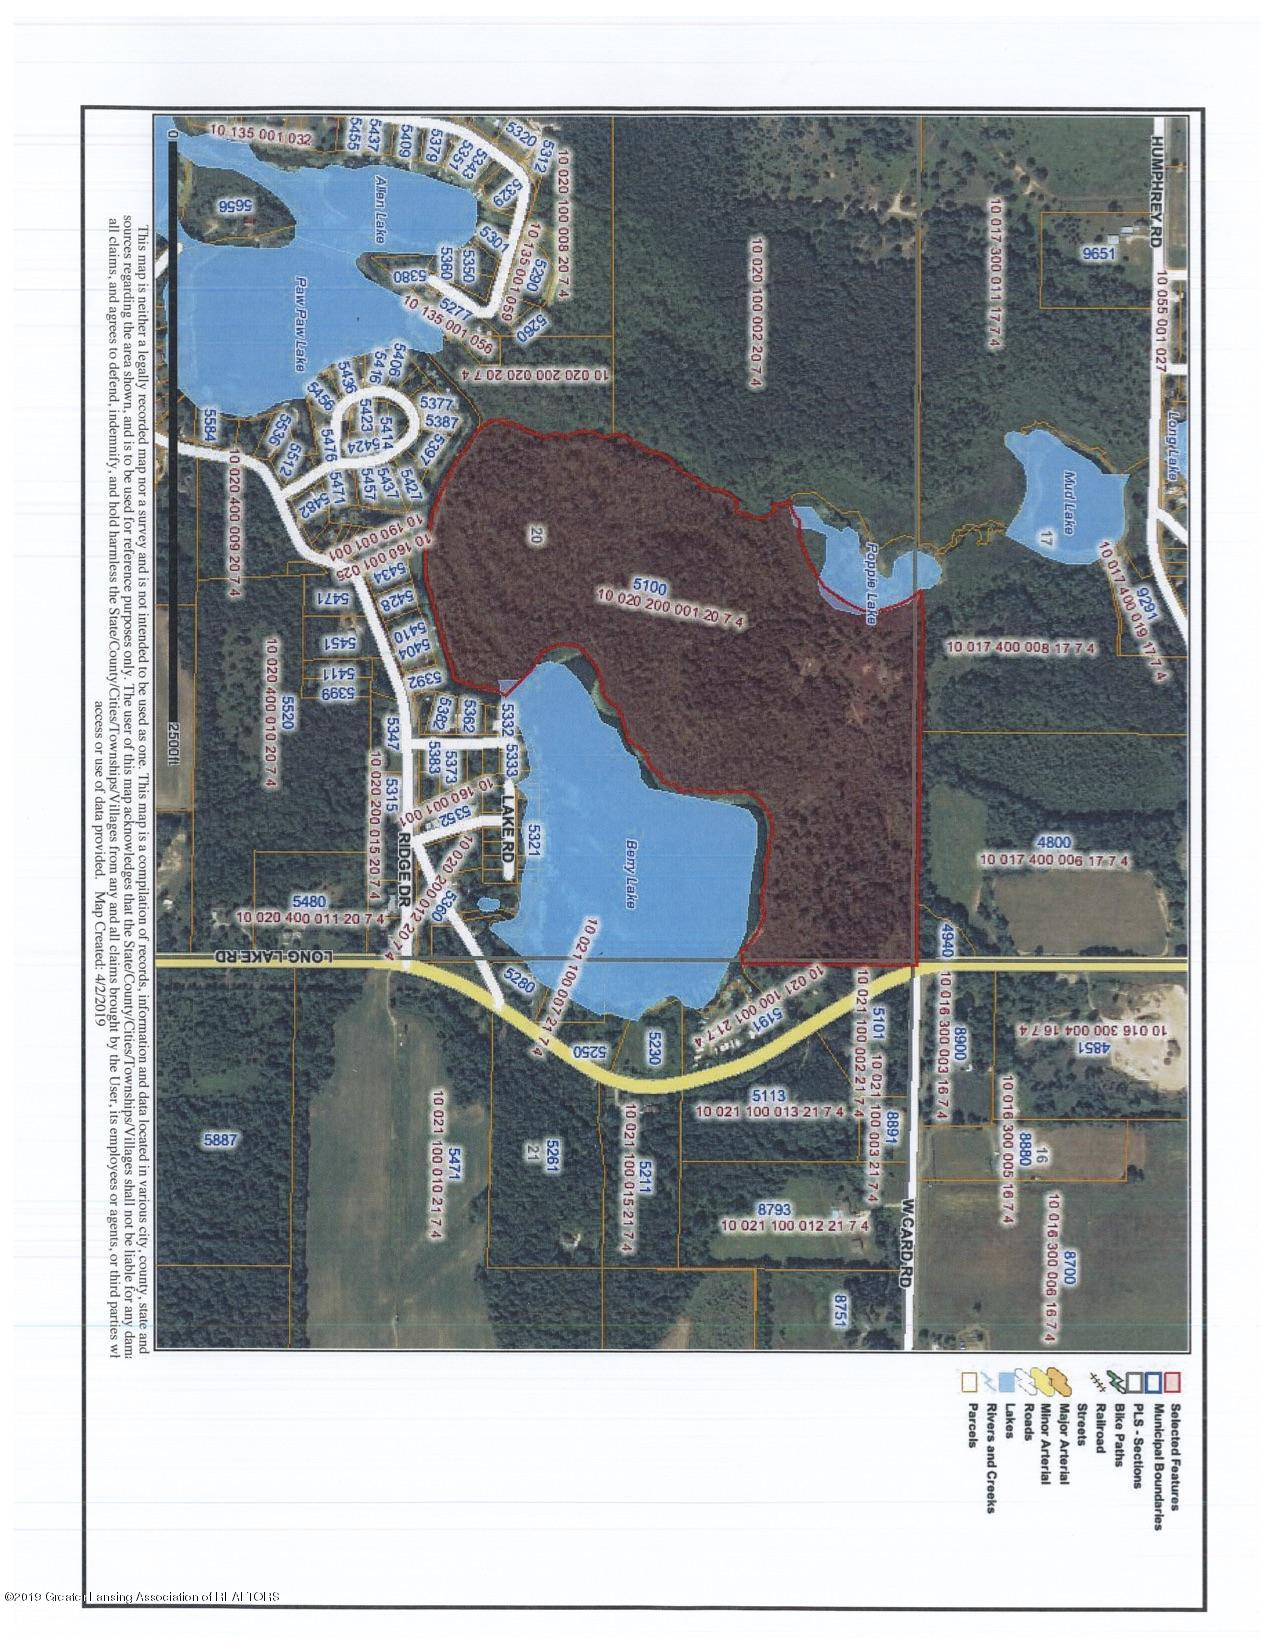 5100 Long Lake Rd - Long Lake ariel view - 1